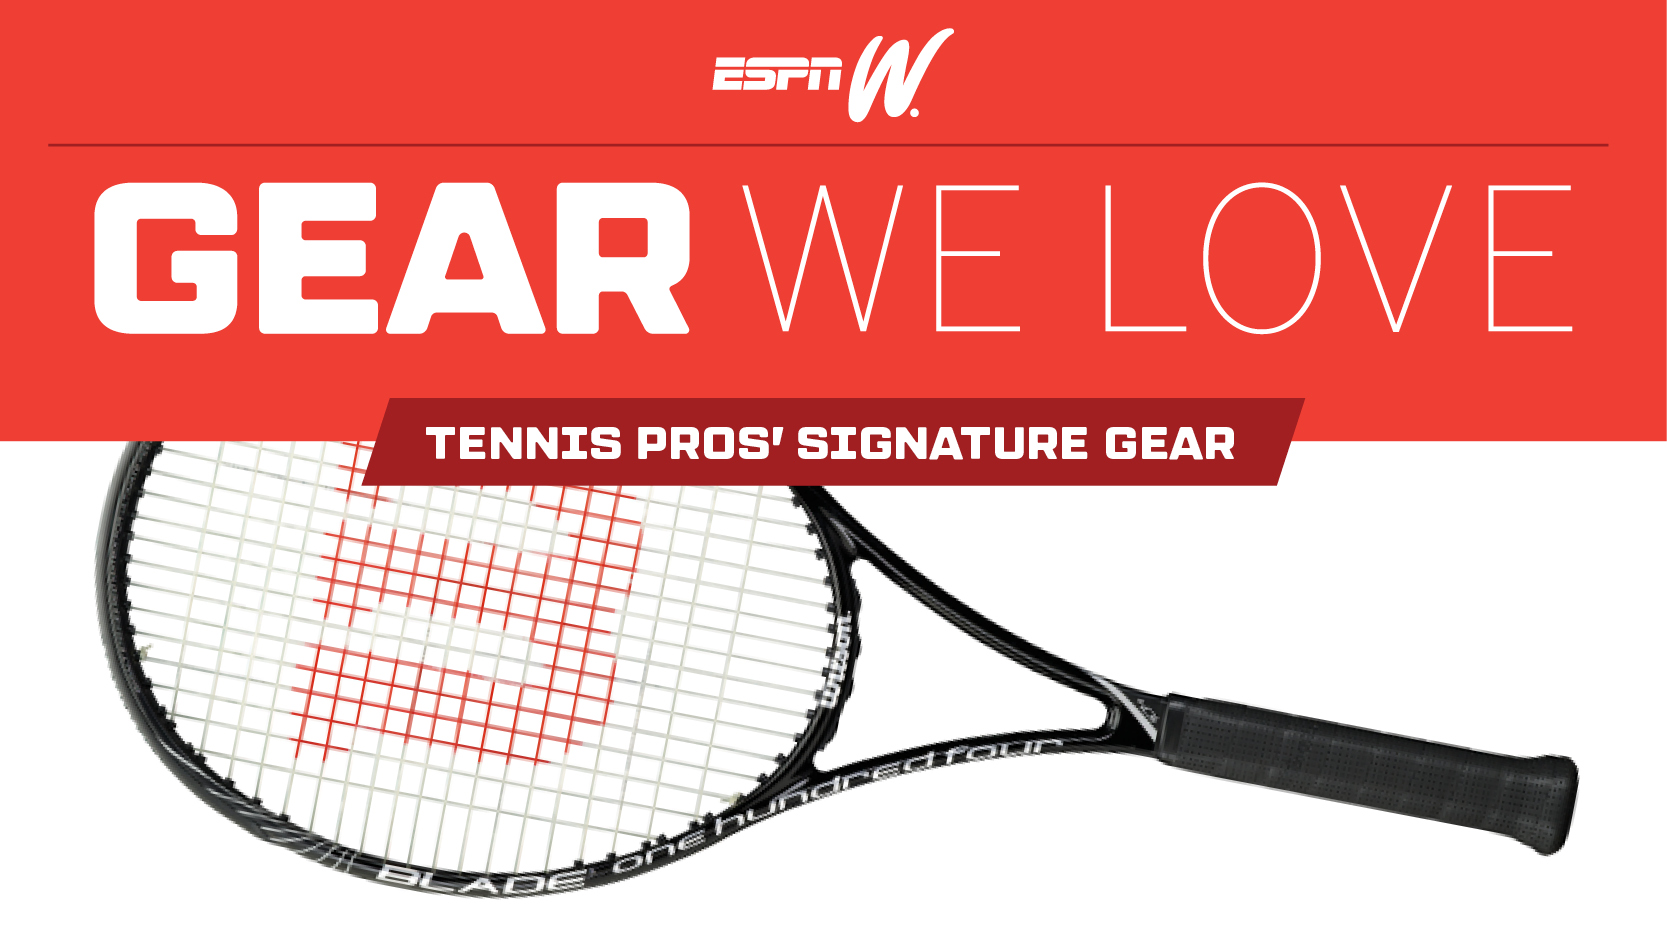 Gear We Love Pro Tennis mem